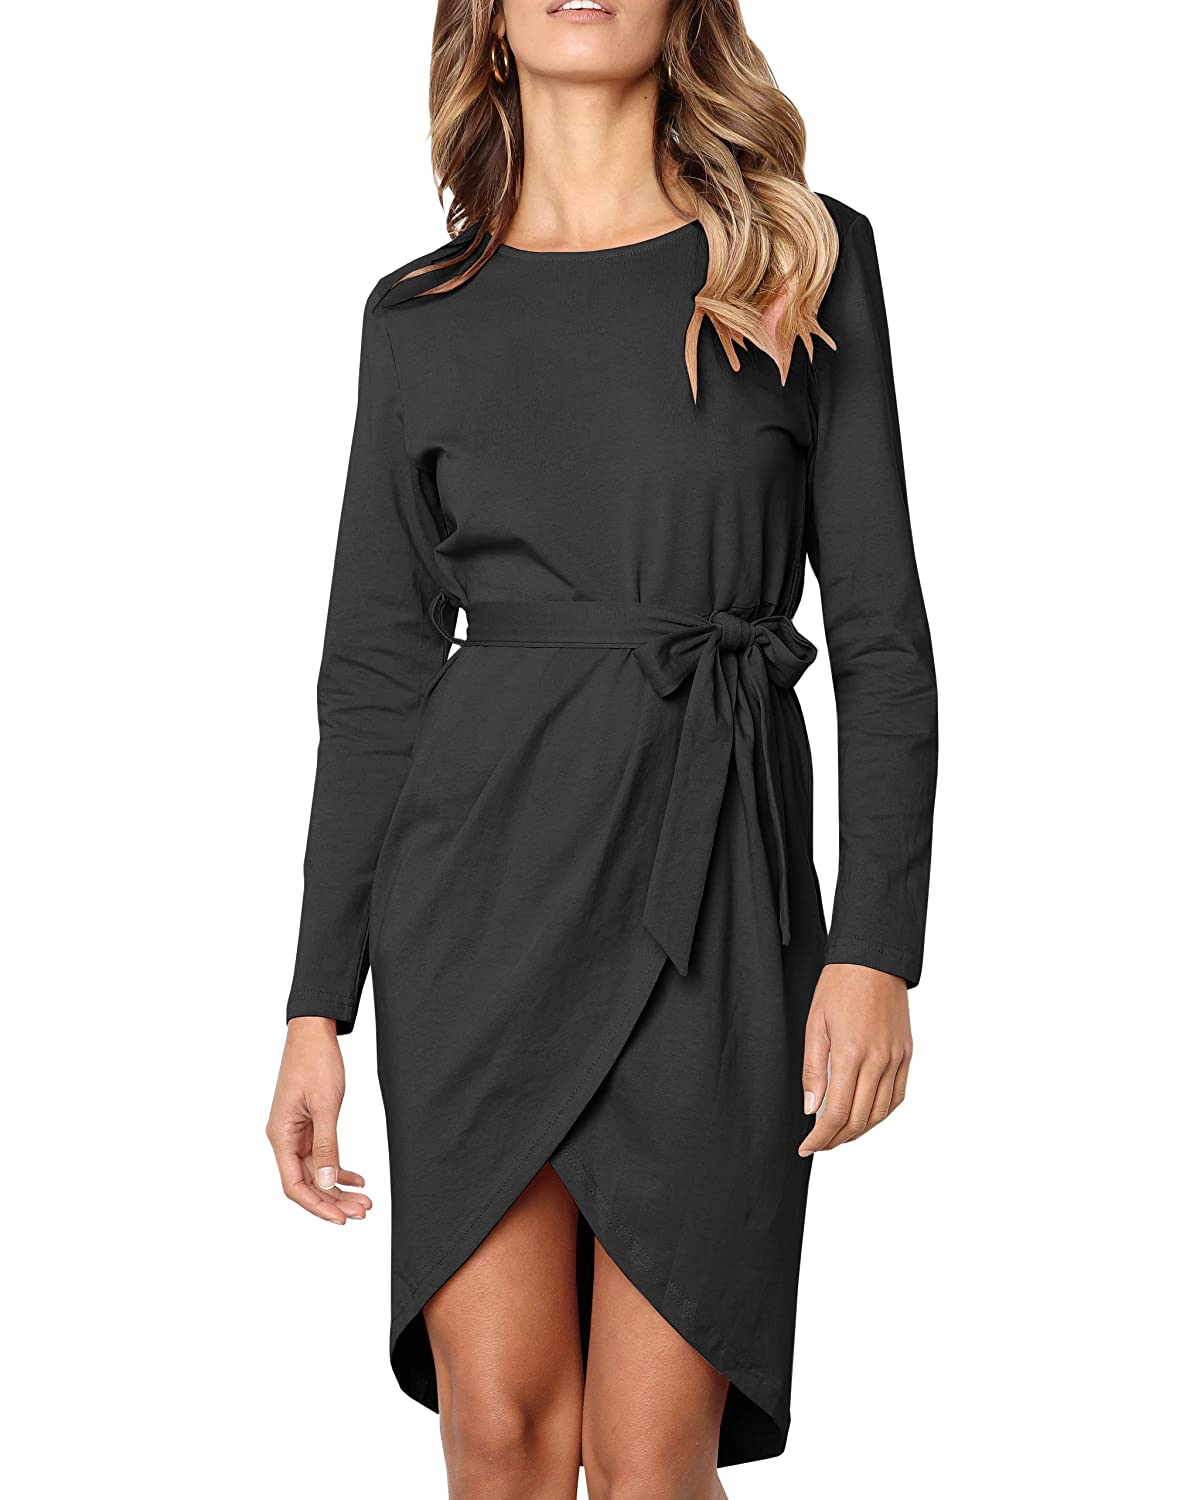 Black YeMgSiP Womens Casual Wrap Midi Dress Long Sleeve High Waist Front Slit Party Dress with Belt